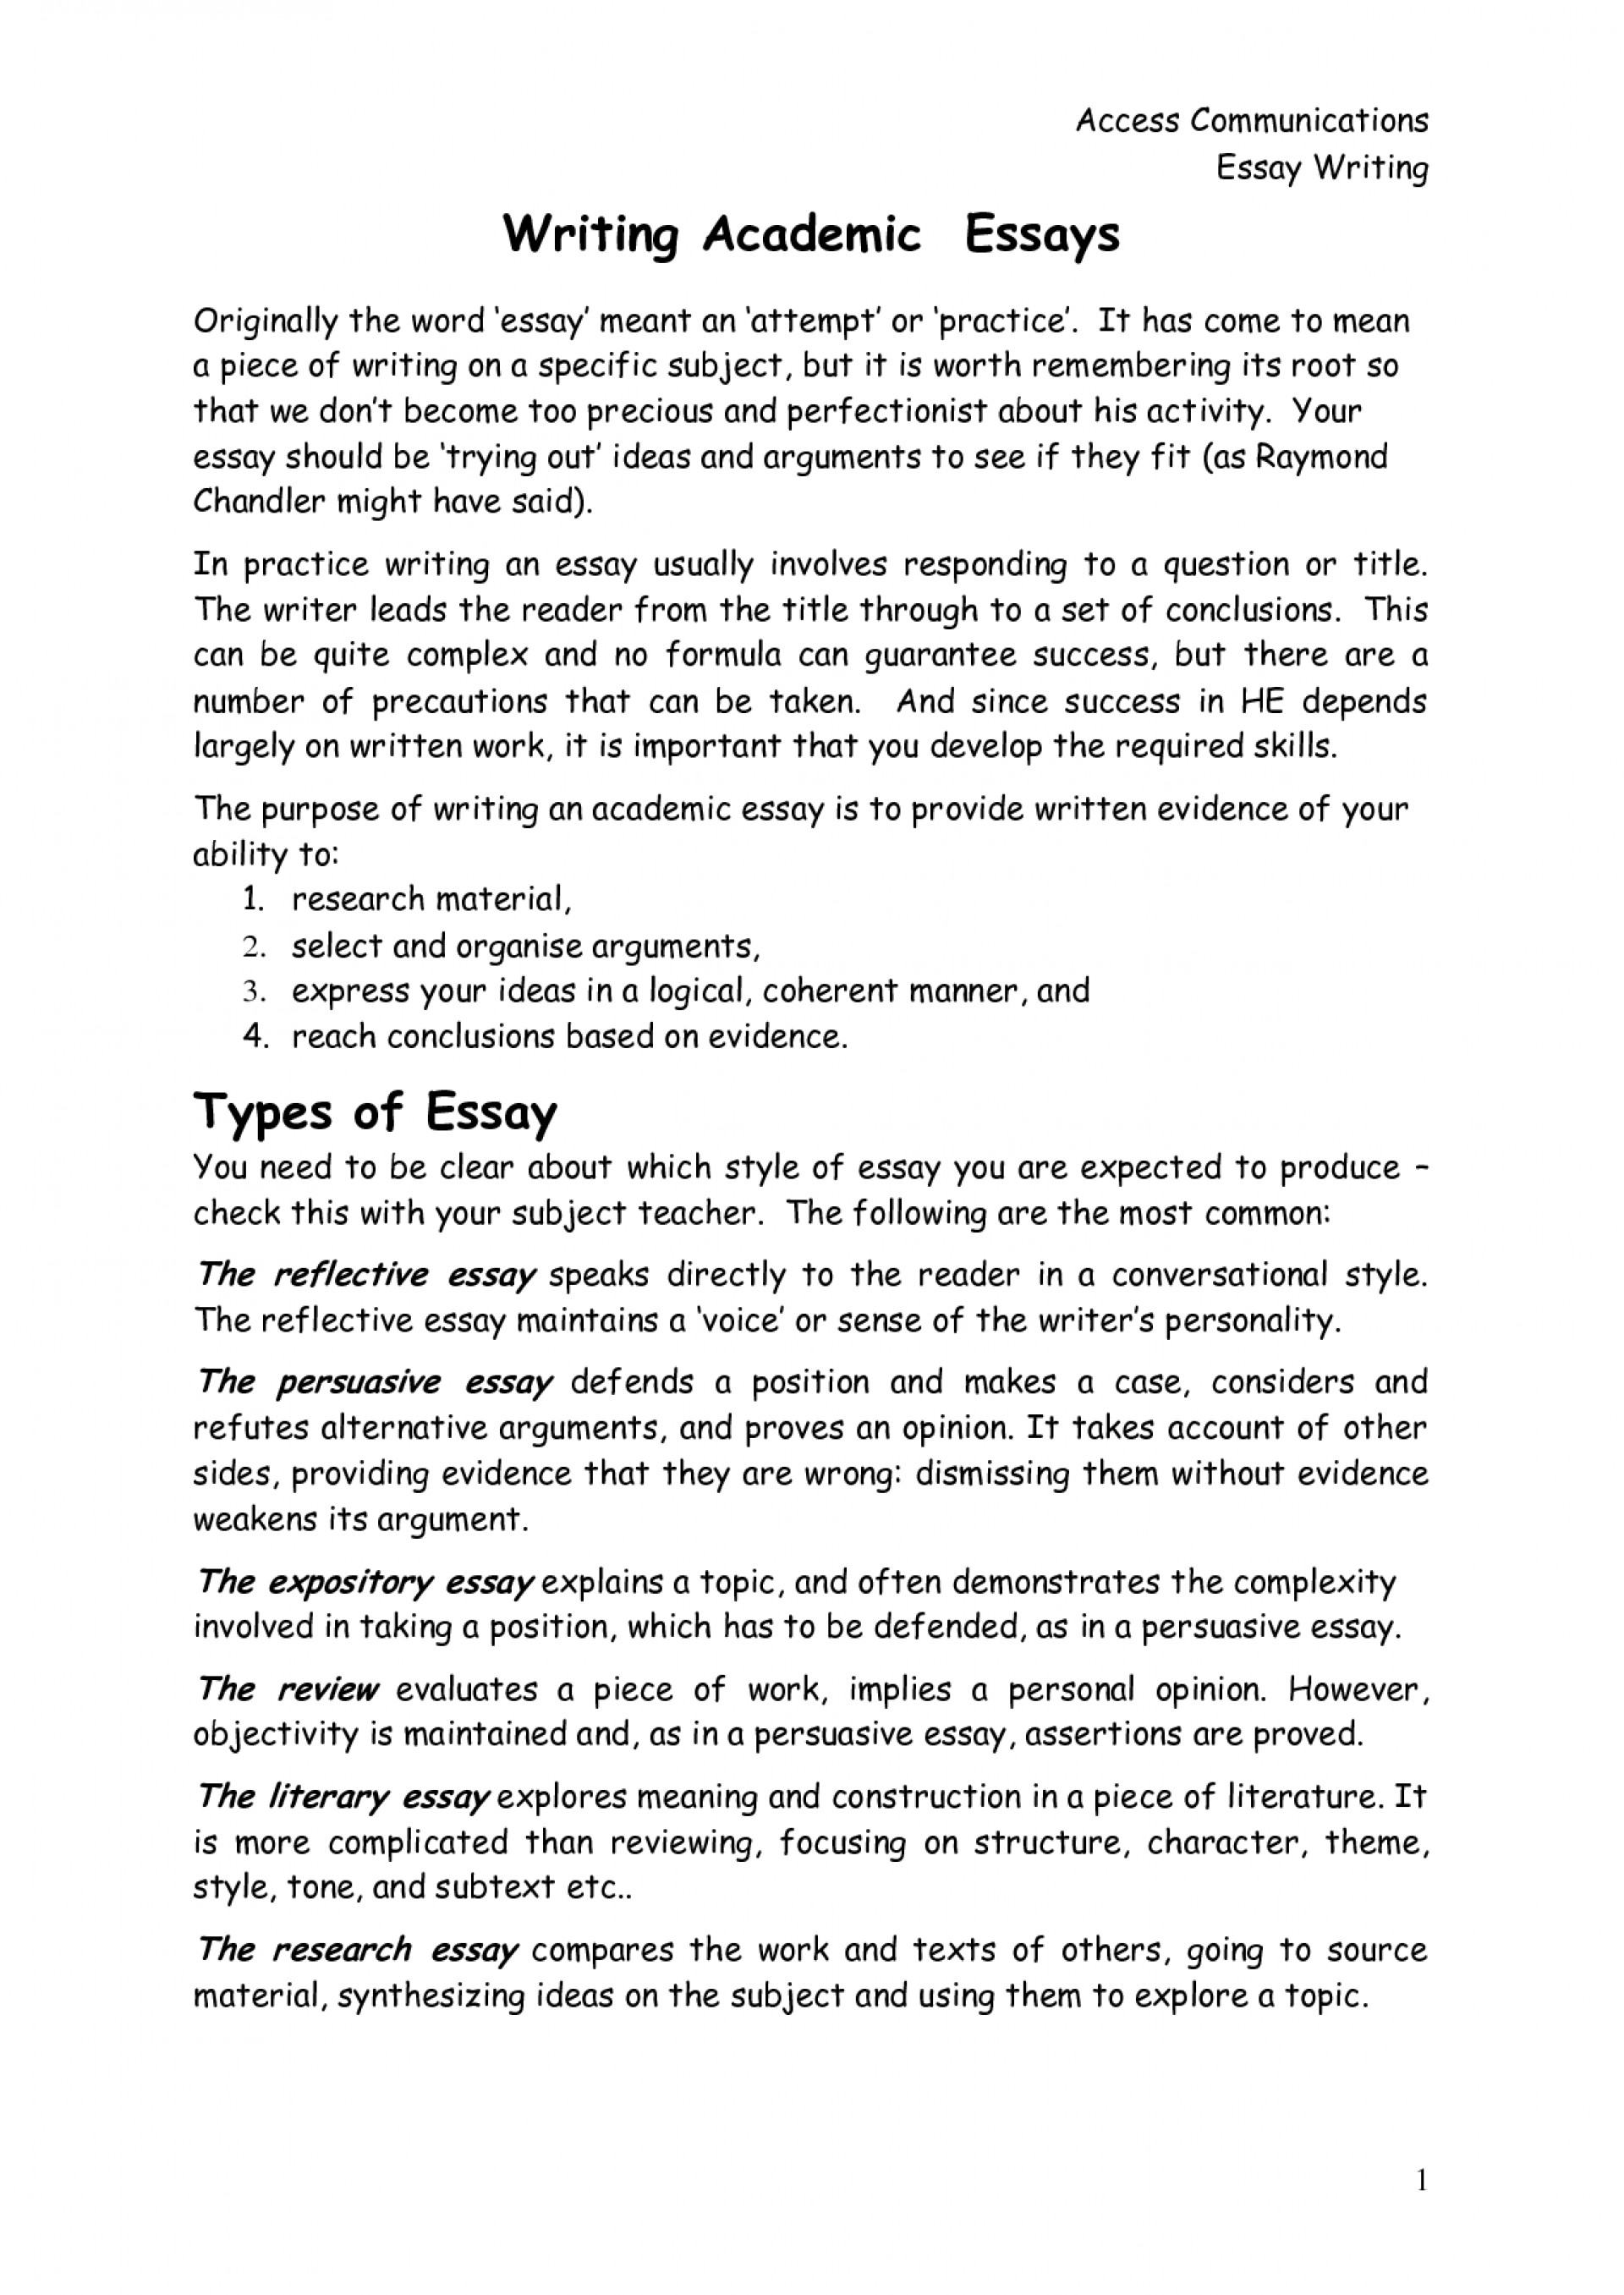 016 Reflective Essay On Academic Writings Beautiful Examples Personal Pdf About Life Format 1920